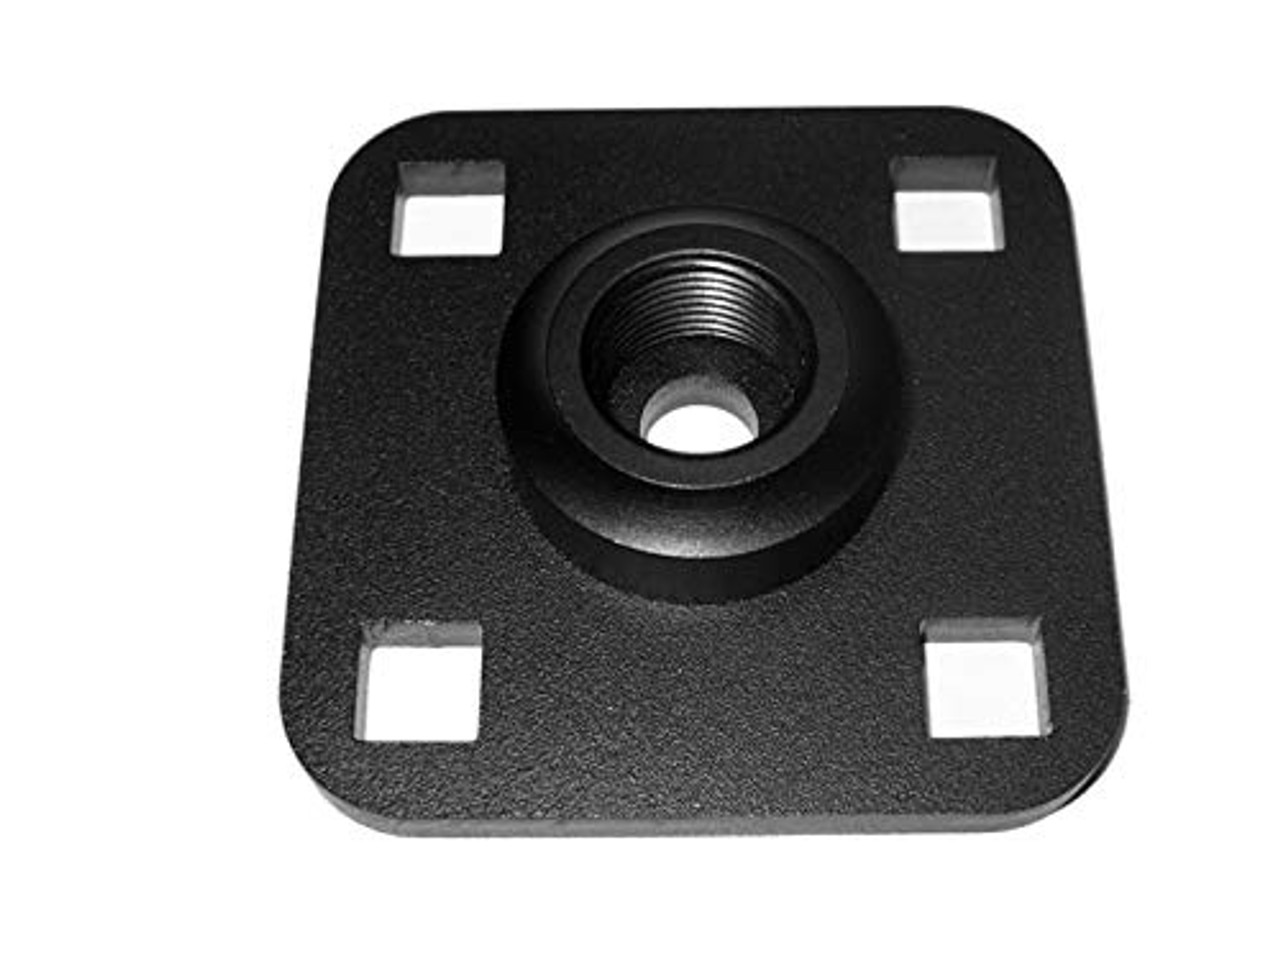 Adapter Plate – 4 Bolt Hole GJ to Zirkona | 0309X95LX2R